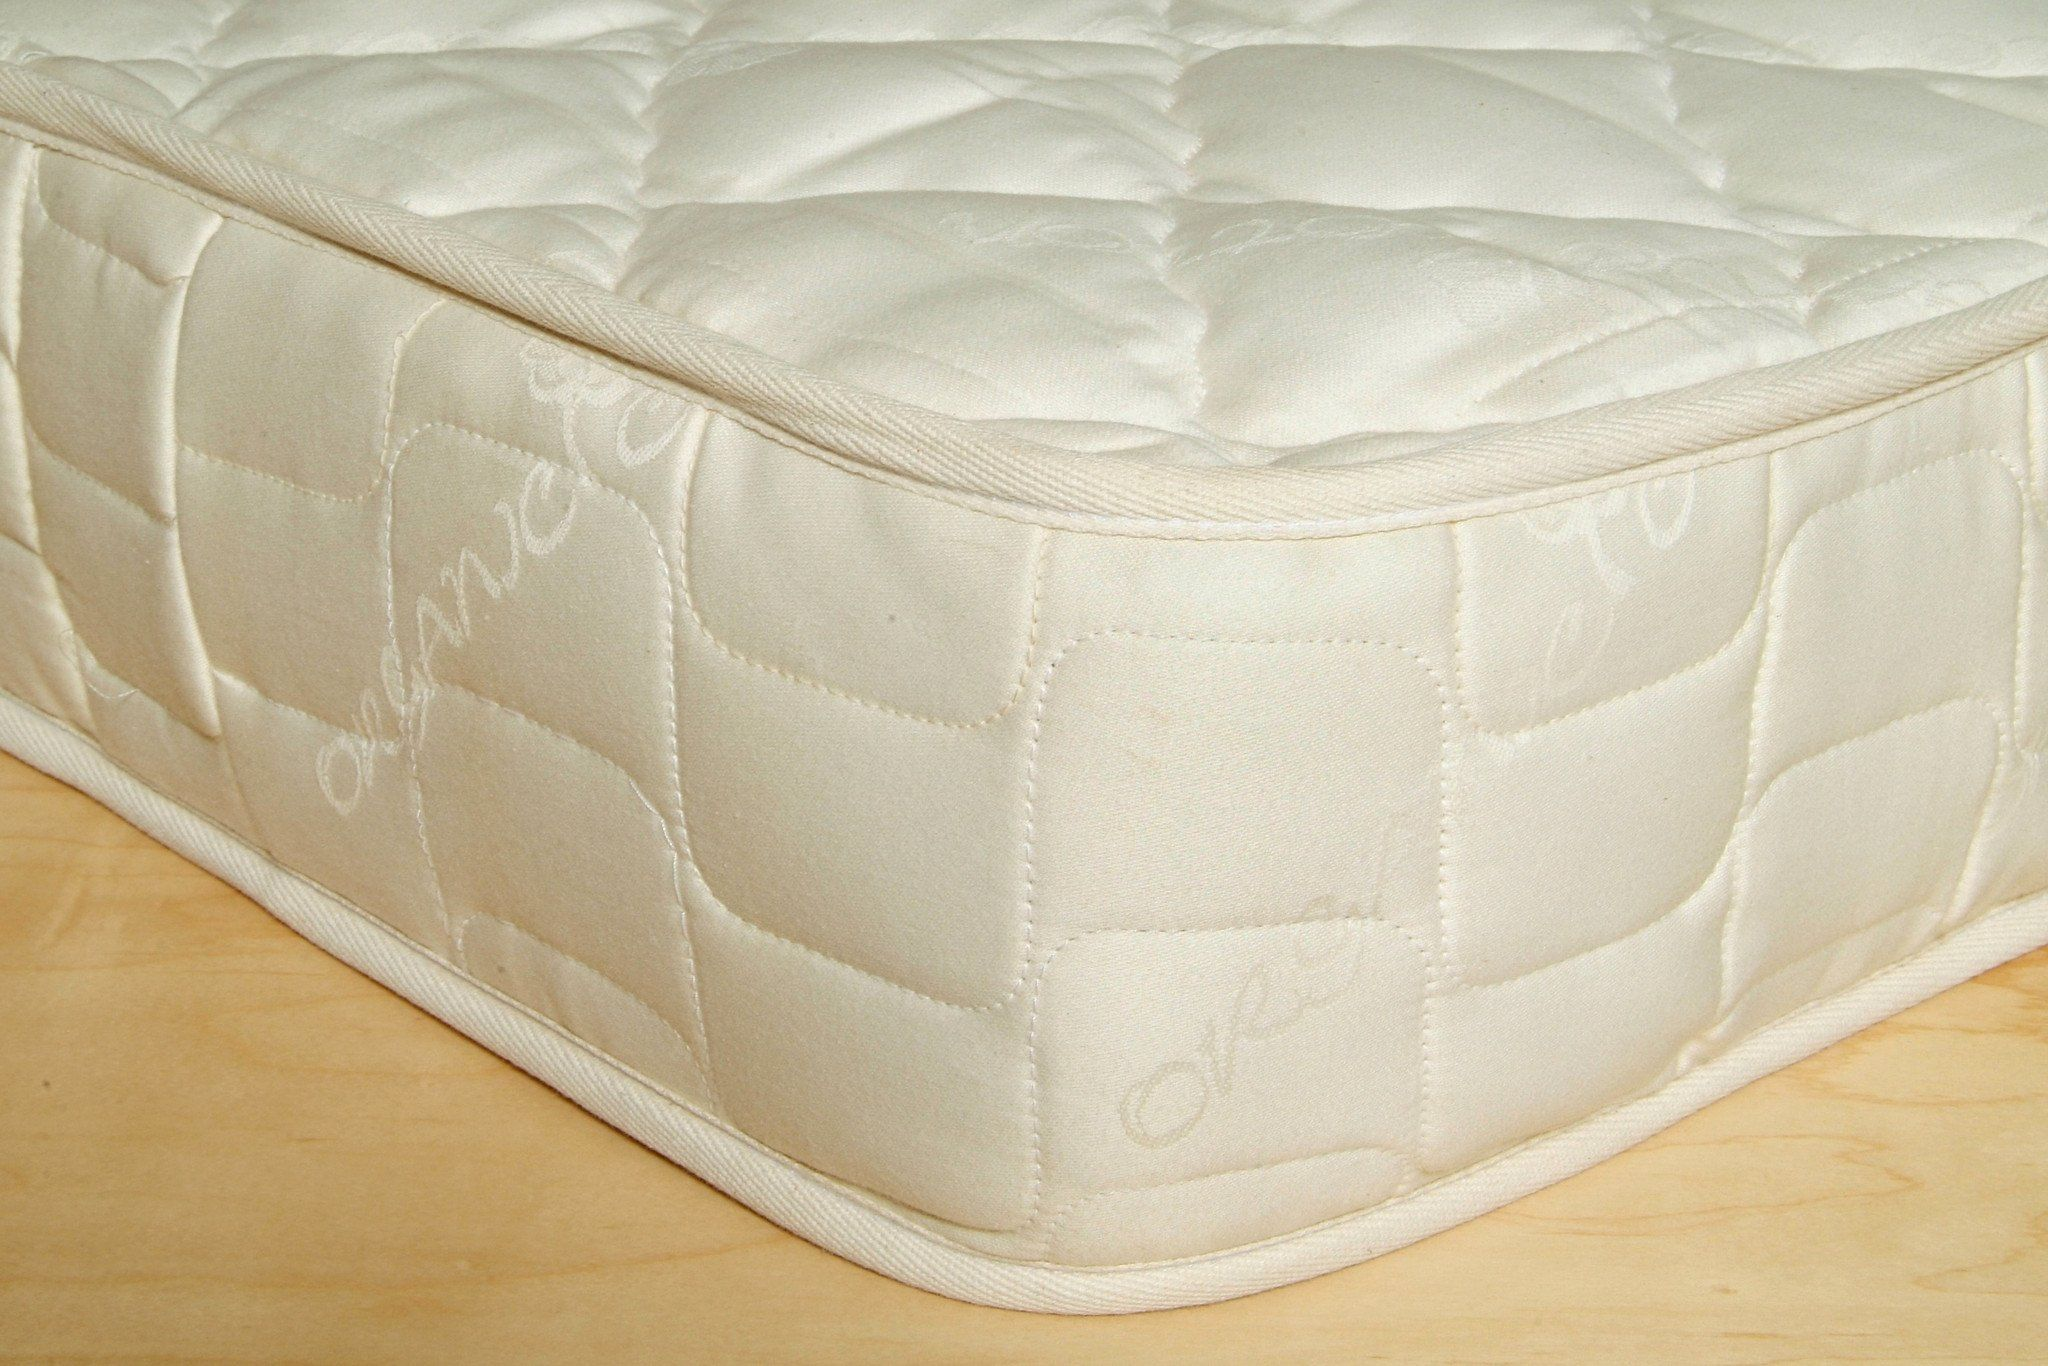 pad cover deluxe photo organic cotton fitted crib of quilted matress x marvelous mattress amazon naturepedic com baby